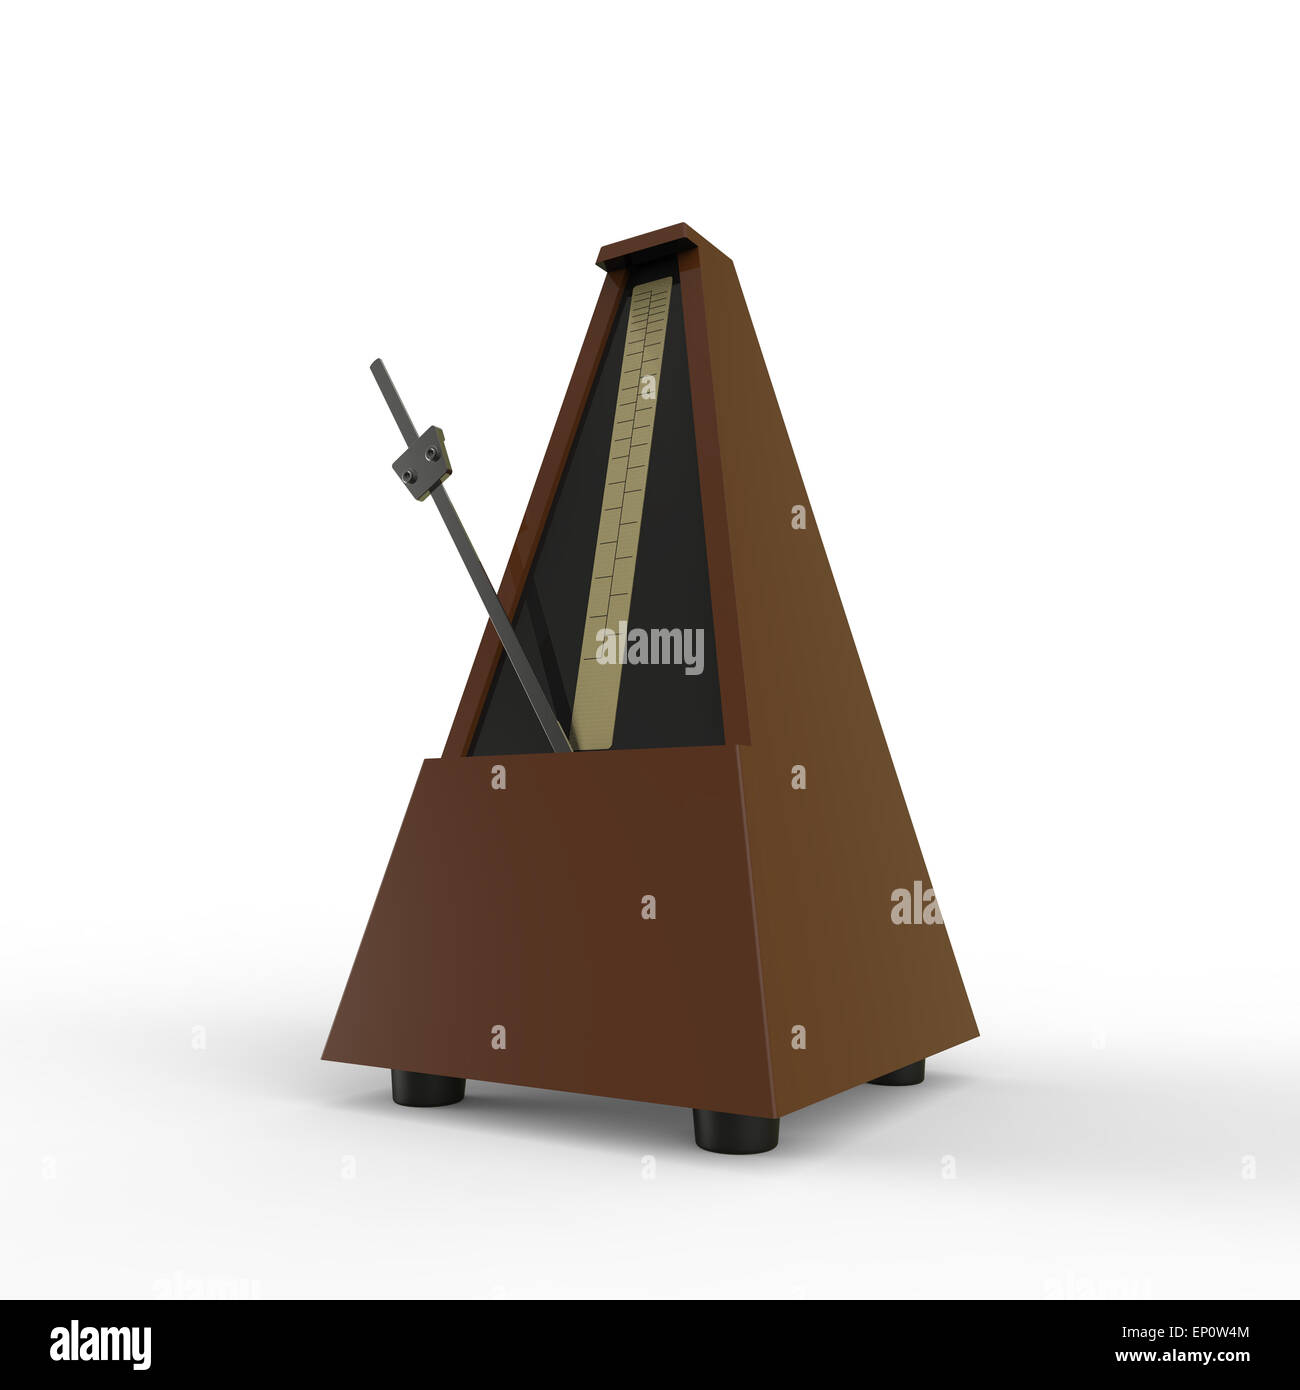 brown pyramid shaped wooden metronome on a white background used for music practice to keep the rhythm - Stock Image